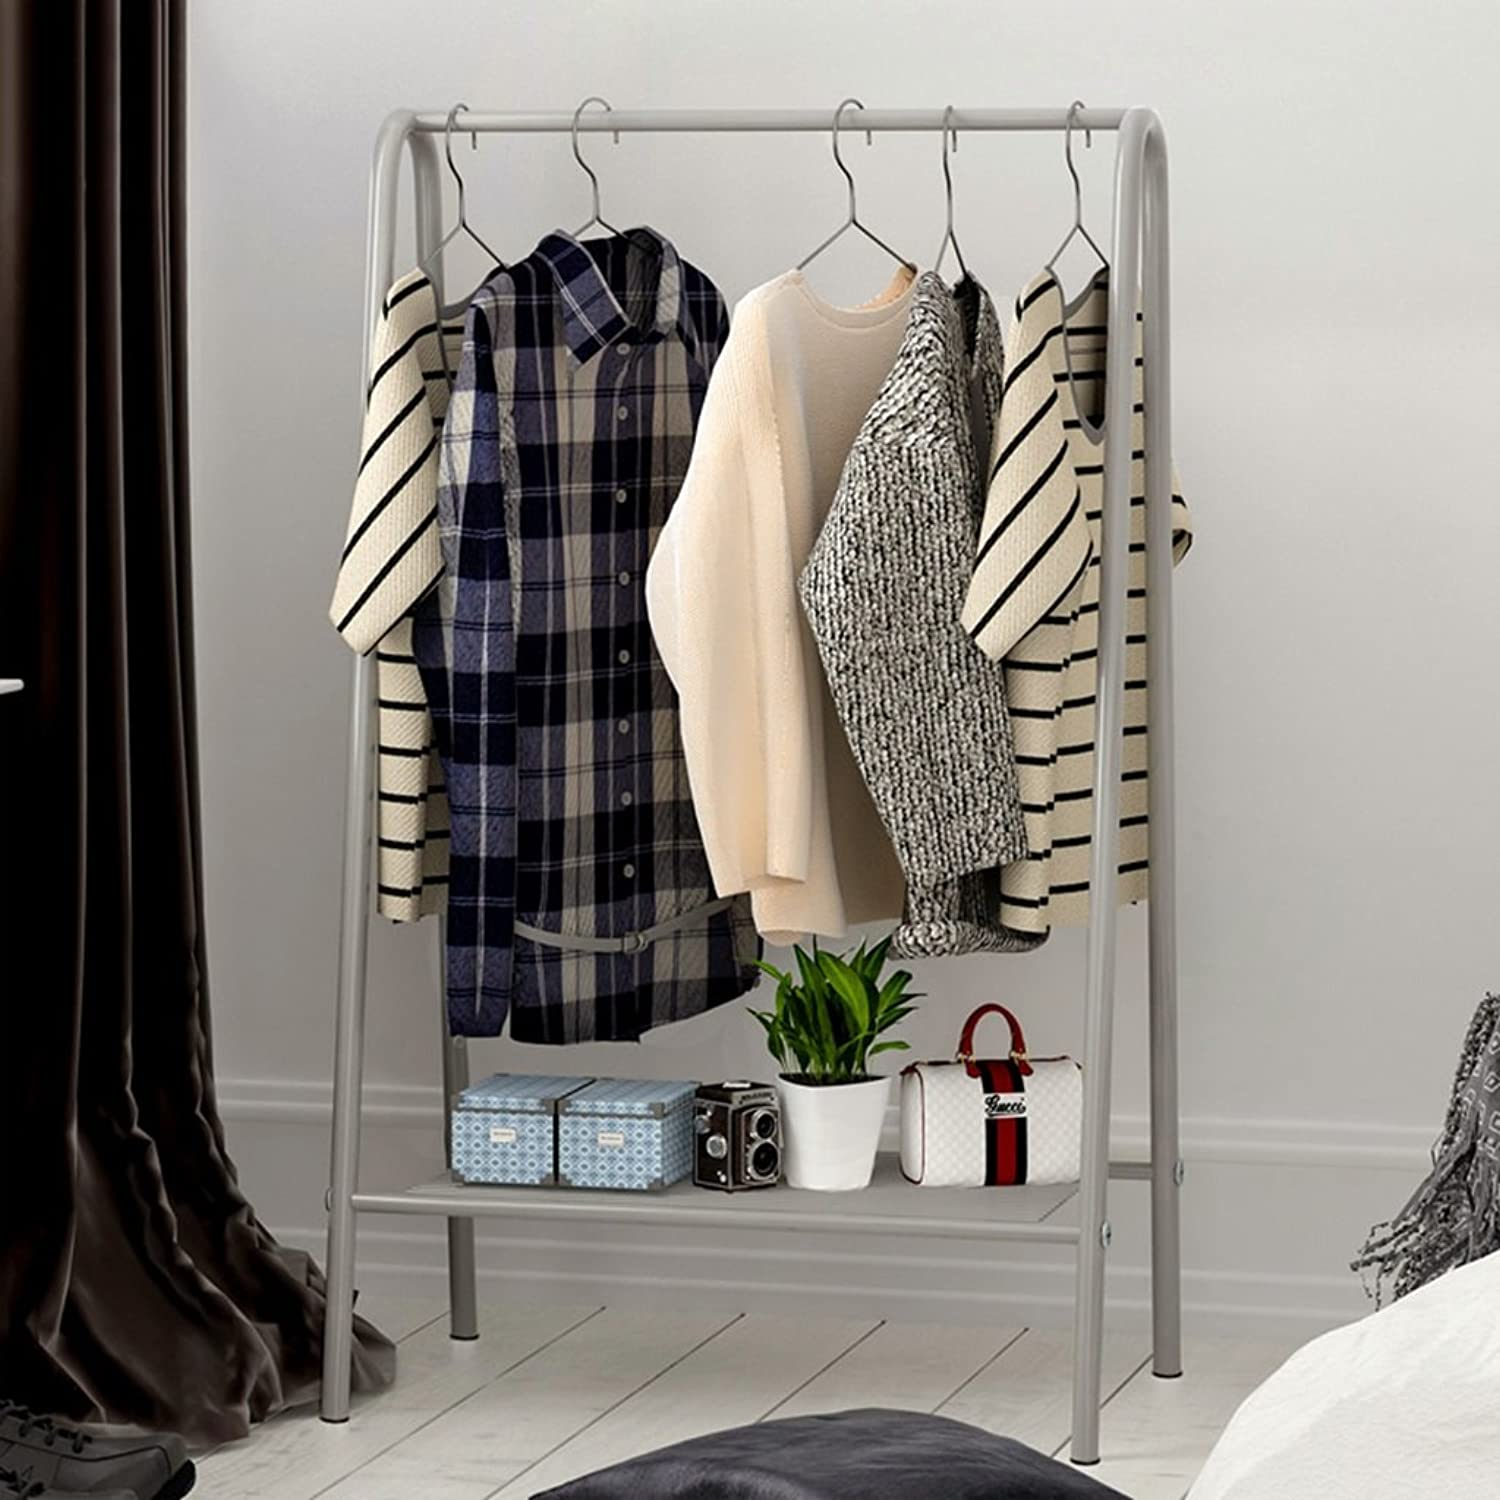 GJM Shop Iron Floorstanding Coat Rack Simple Can Be Placed Bedroom is Simple and Modern Clothes Hanger Living Room Racks 63  35  117cm (color   3)